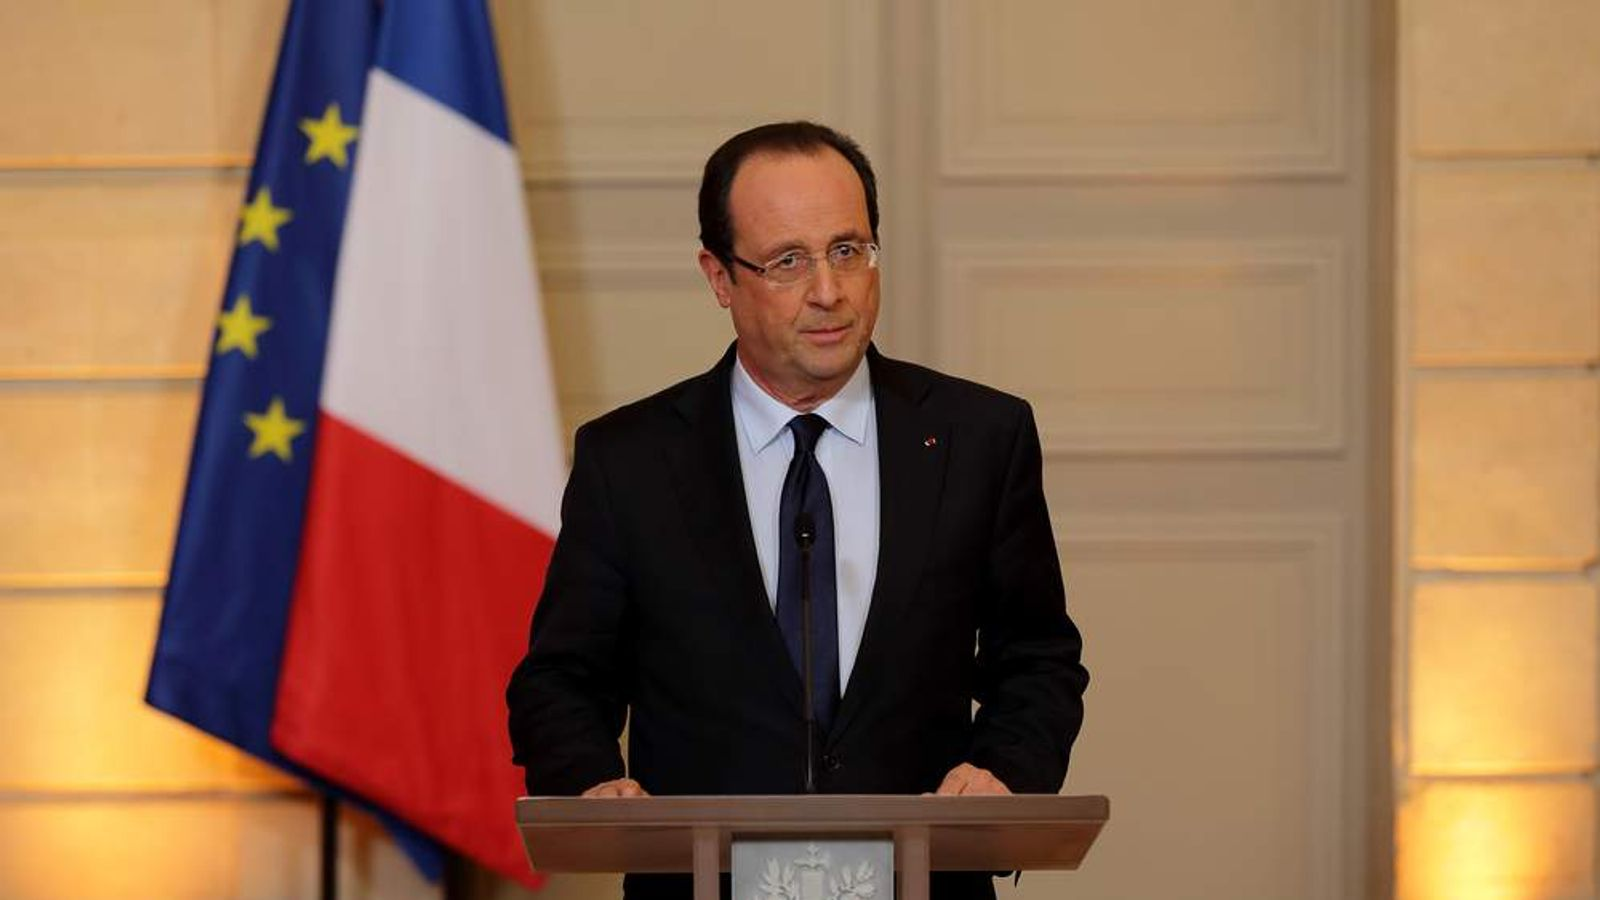 ce's President Hollande arrives to deliver a statment on the situation in Mali at the Elysee Palace in Paris